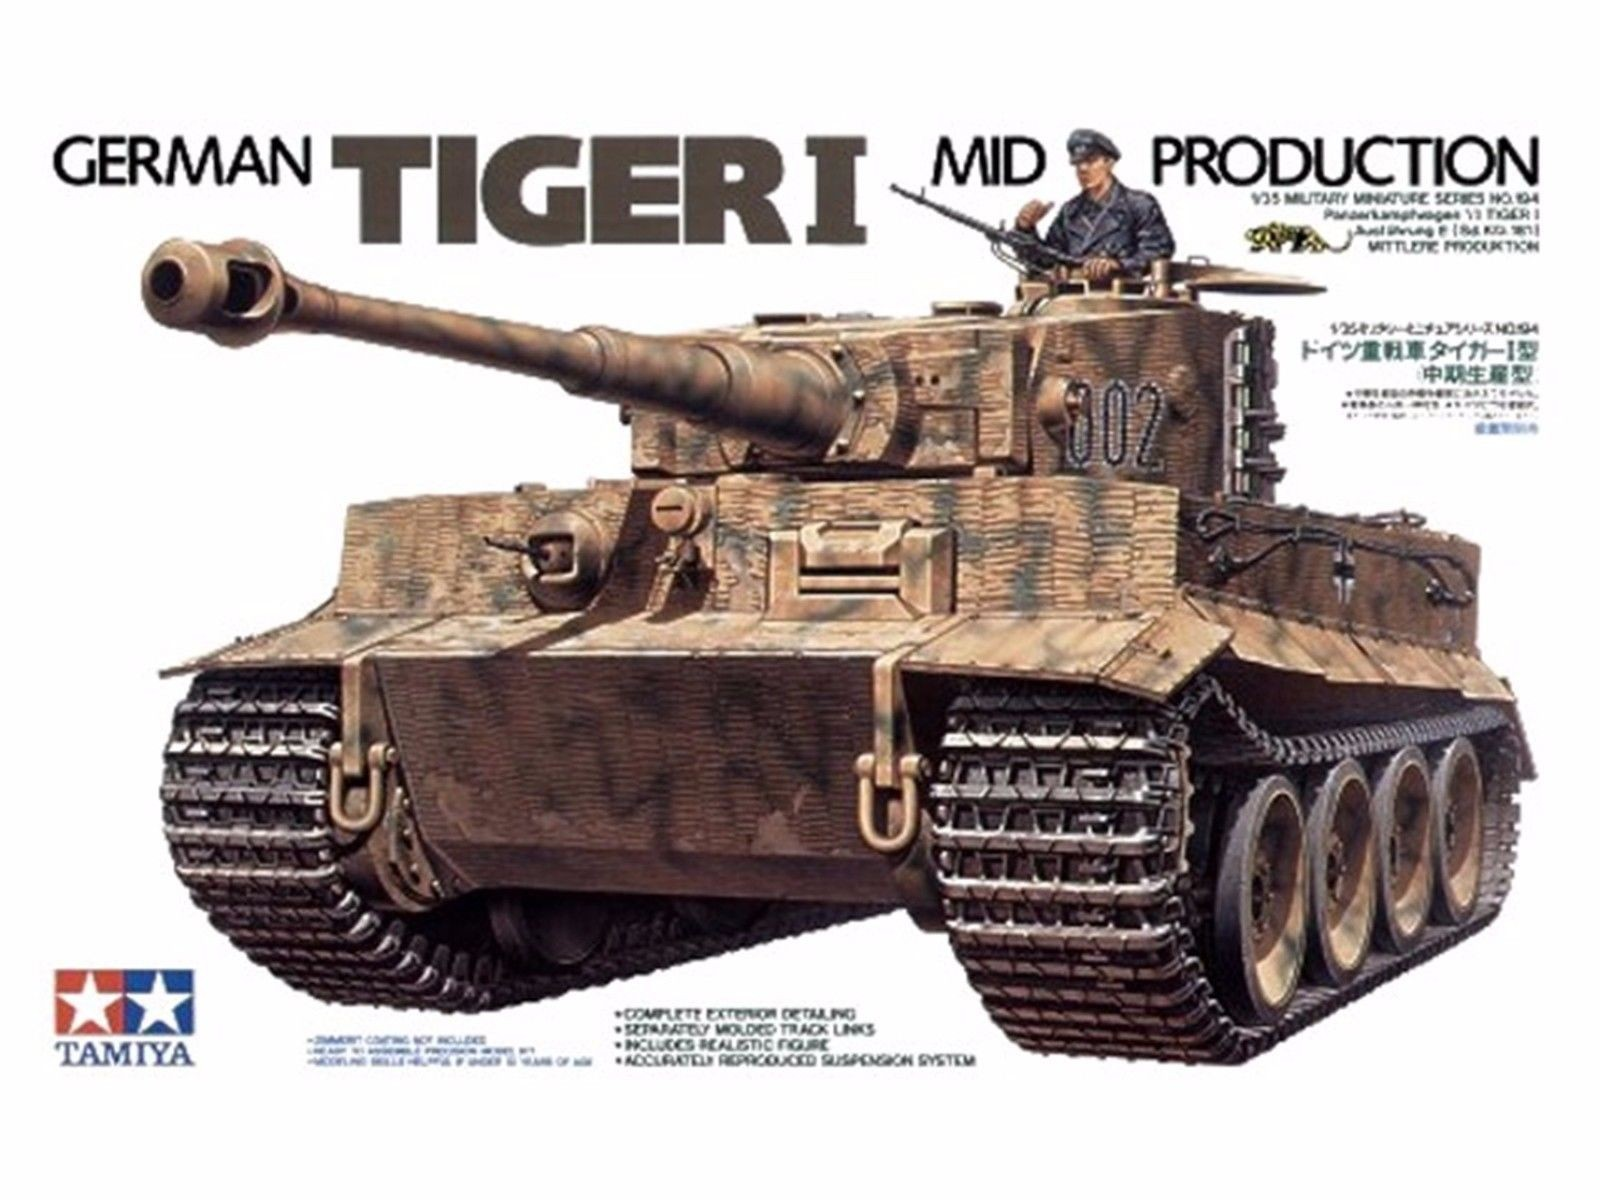 German Tiger I Mid Production - Tamiya 35194 - plastic model kit - 1/35 scale